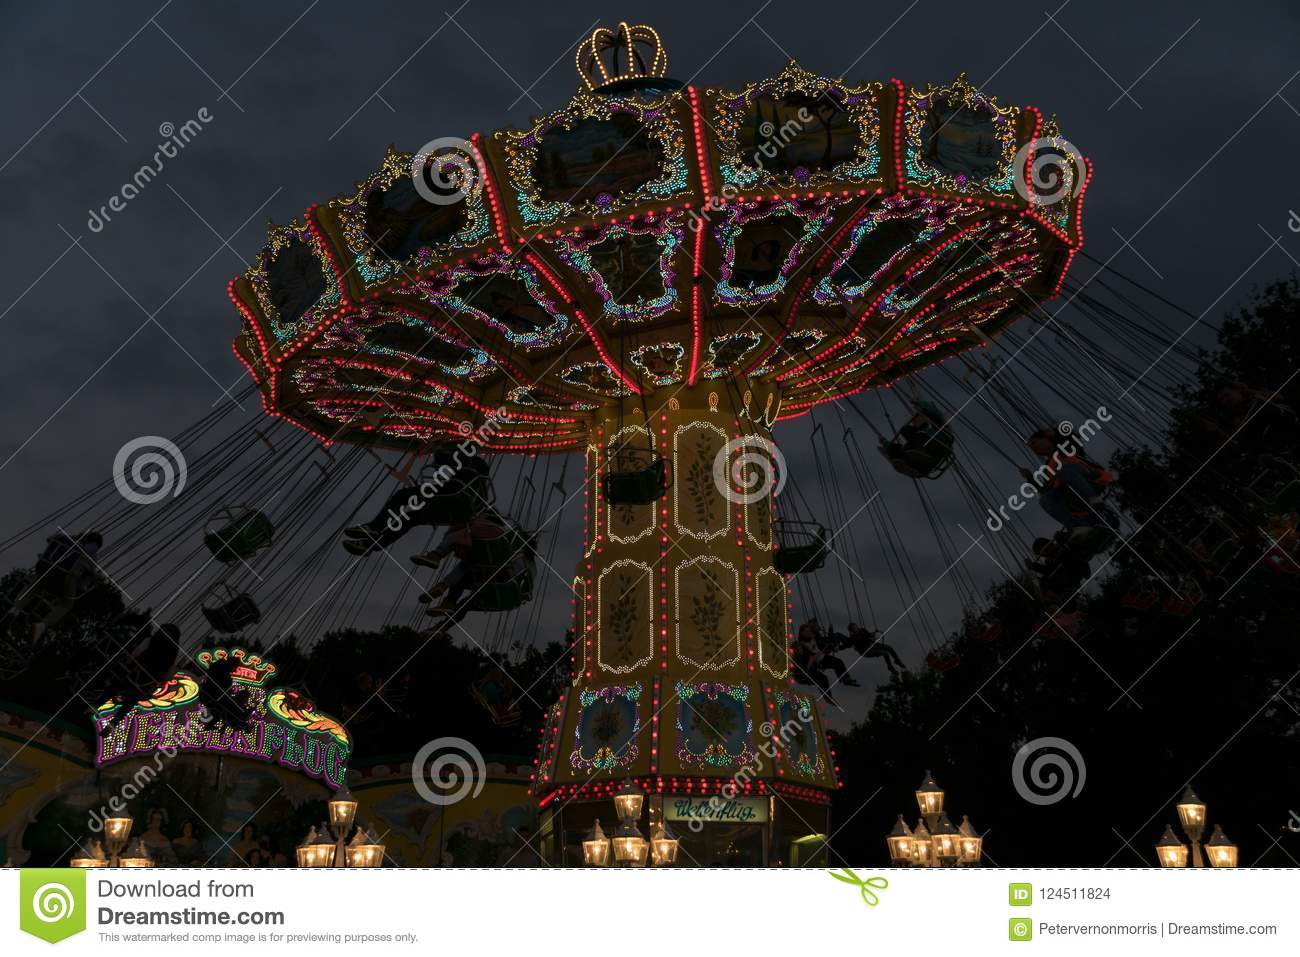 Freimarkt, Bremen,Germany, April 14th, 2017: Fast ride on an illuminated chairoplane with high flying chairs